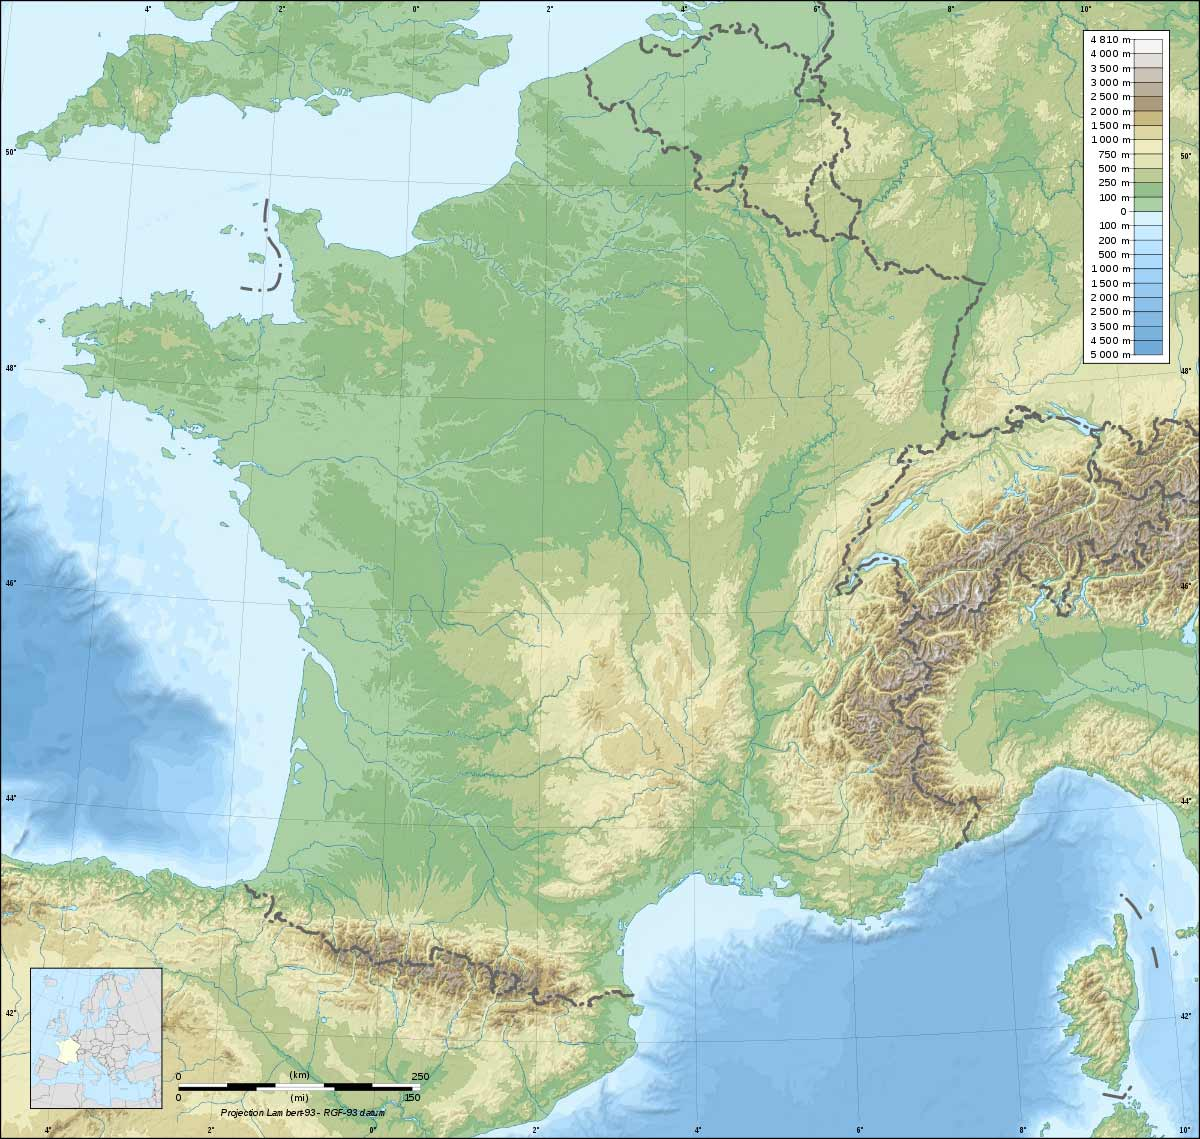 France Topographic Blank Map Mapsof Net